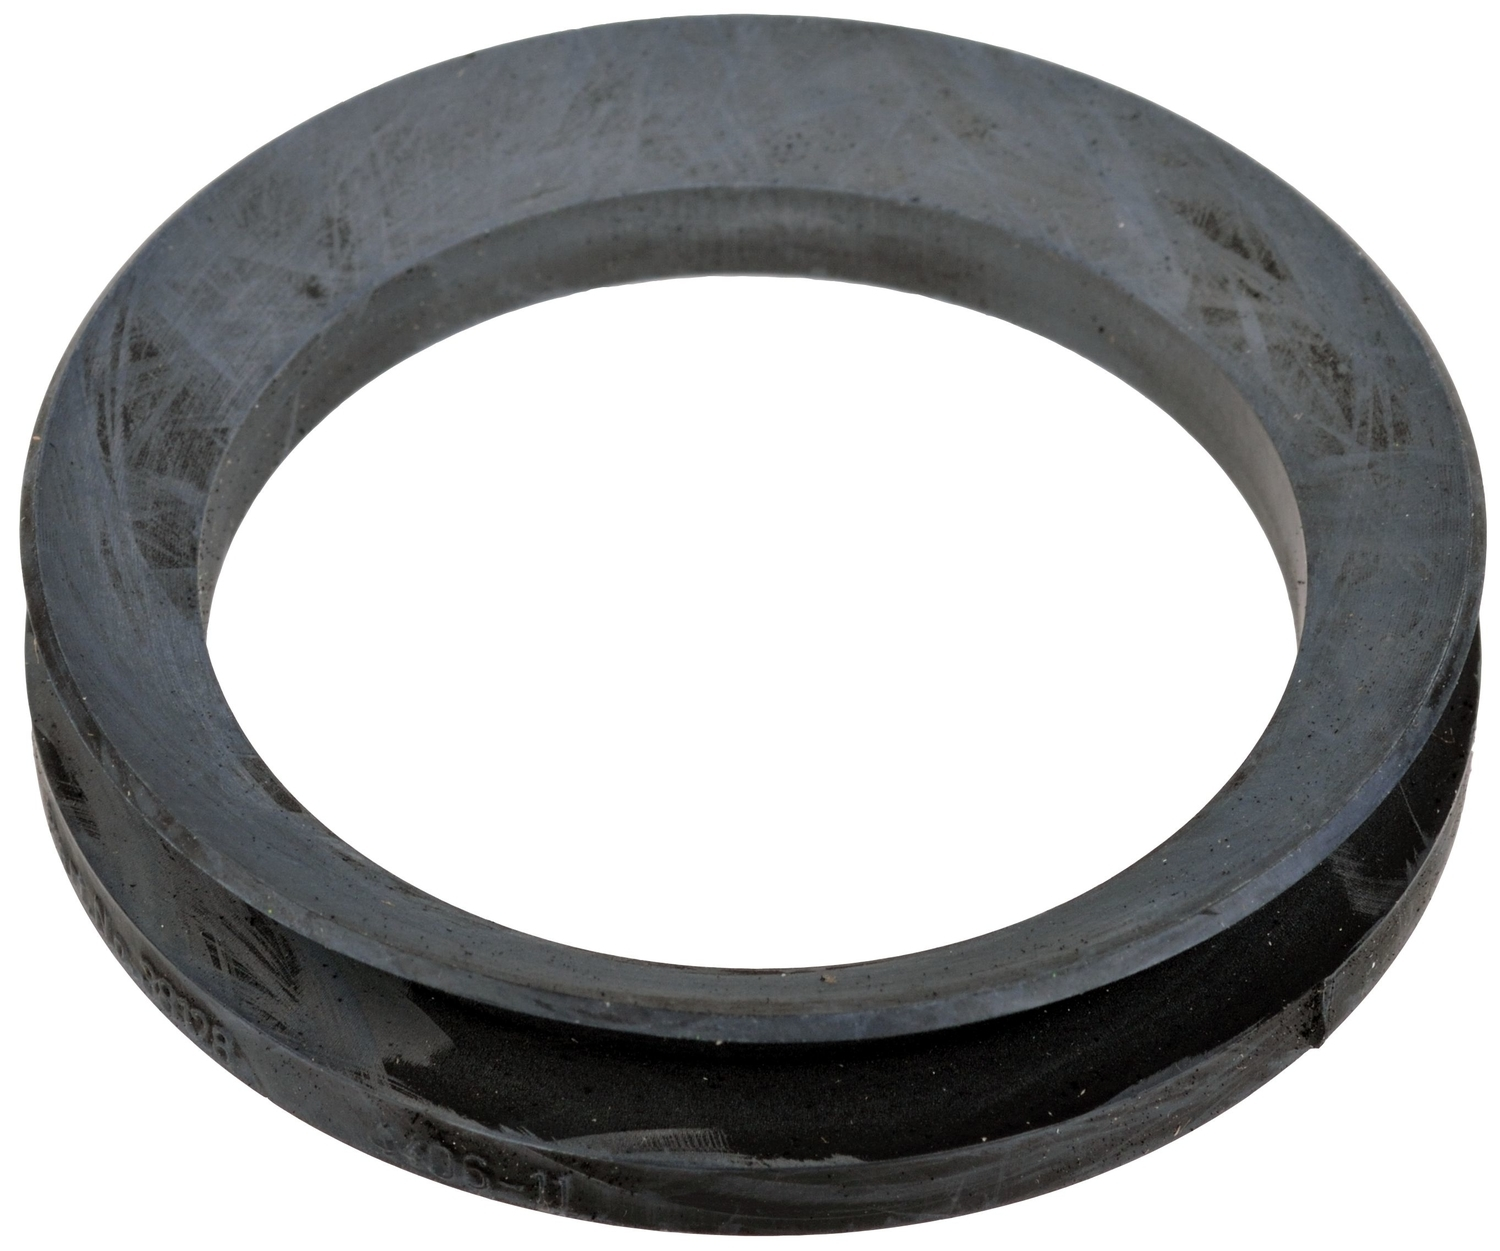 SKF (CHICAGO RAWHIDE) - Spindle Hub Seal - SKF 22311